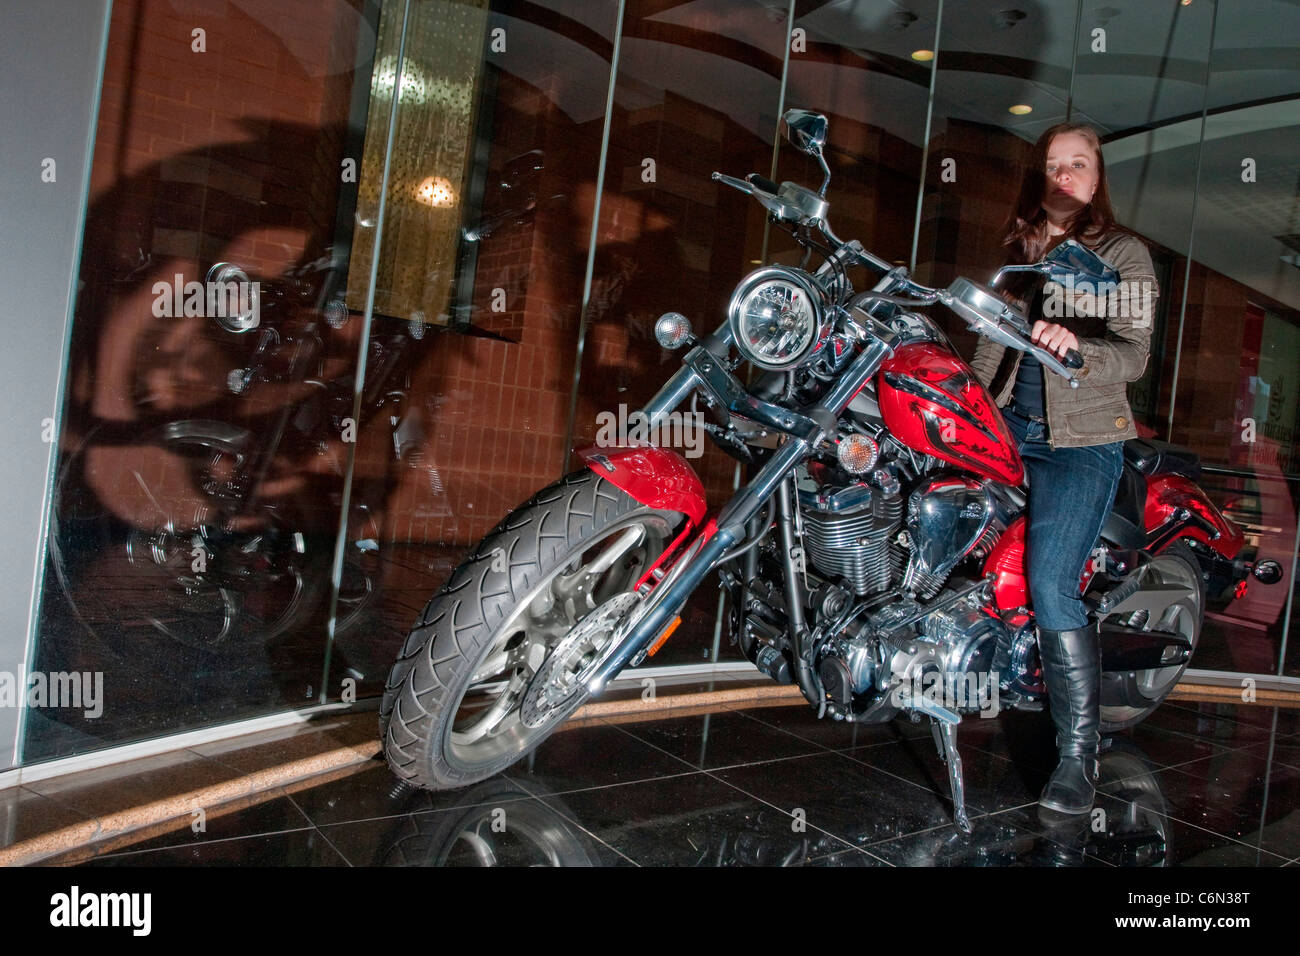 Young girl posing on Yamaha bike in showroom - Stock Image